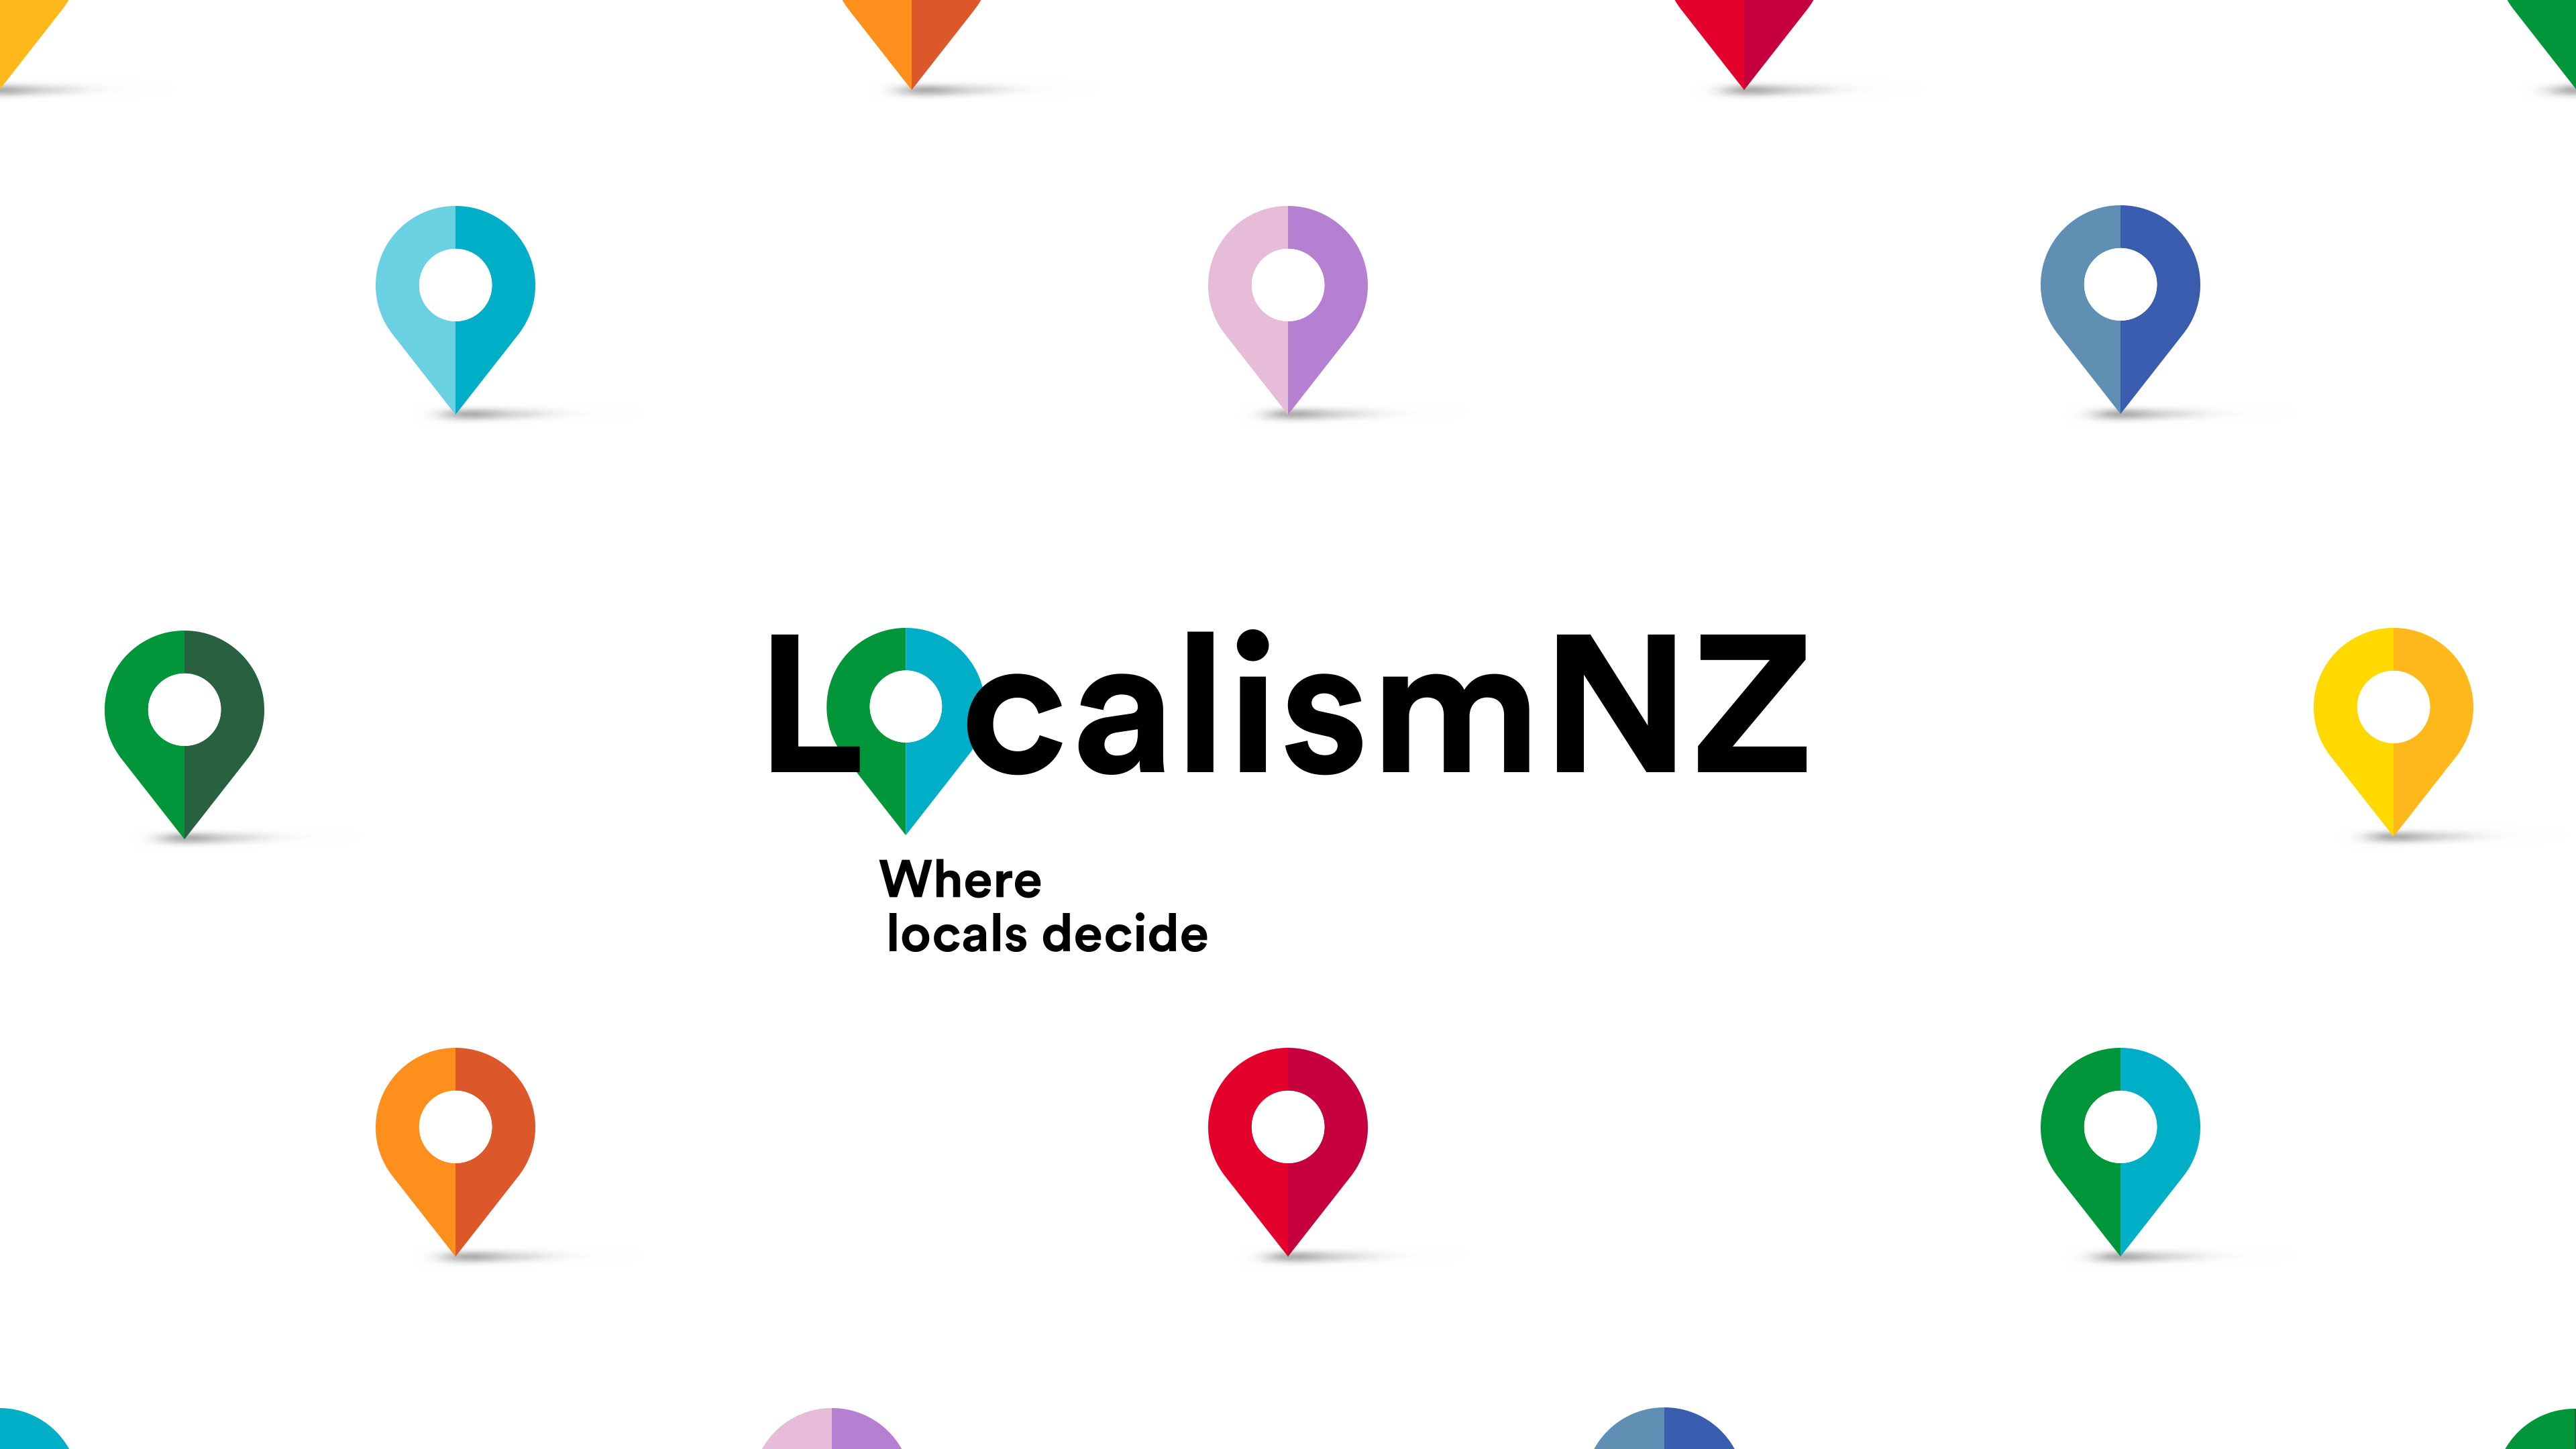 Local Government New Zealand (LGNZ) - Motion Graphics Design, Graphic Design, Digital Marketing